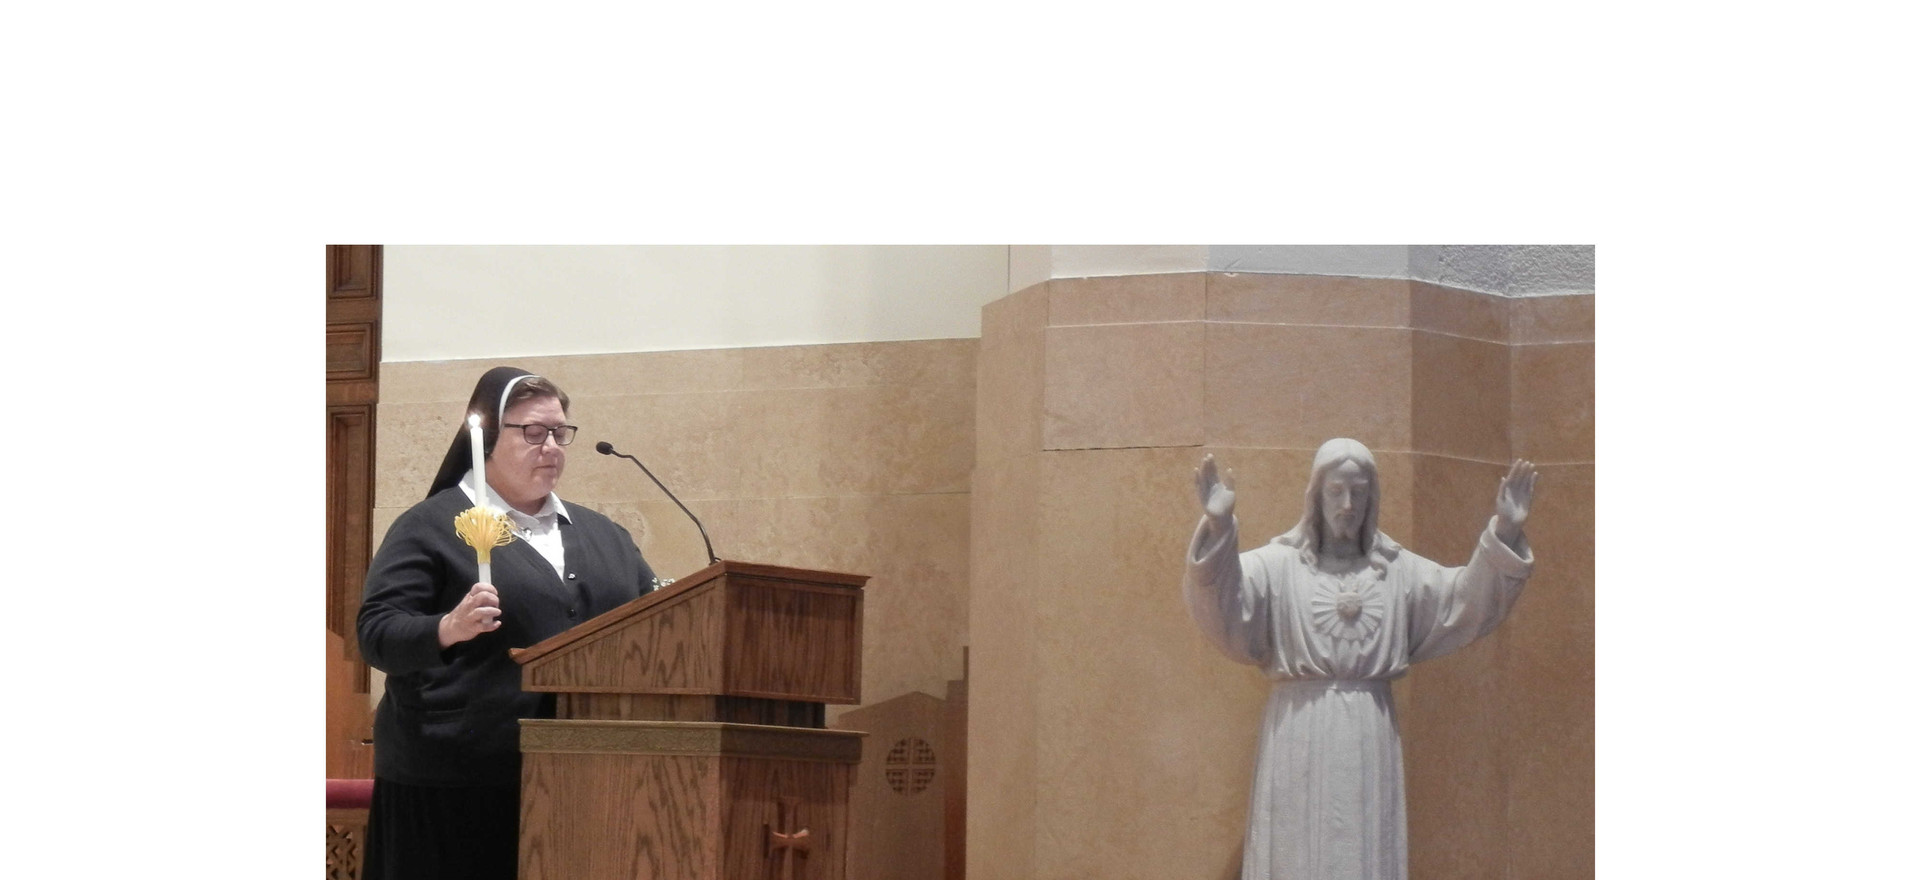 S. Carol leads the jubilarians in their renewal of vows